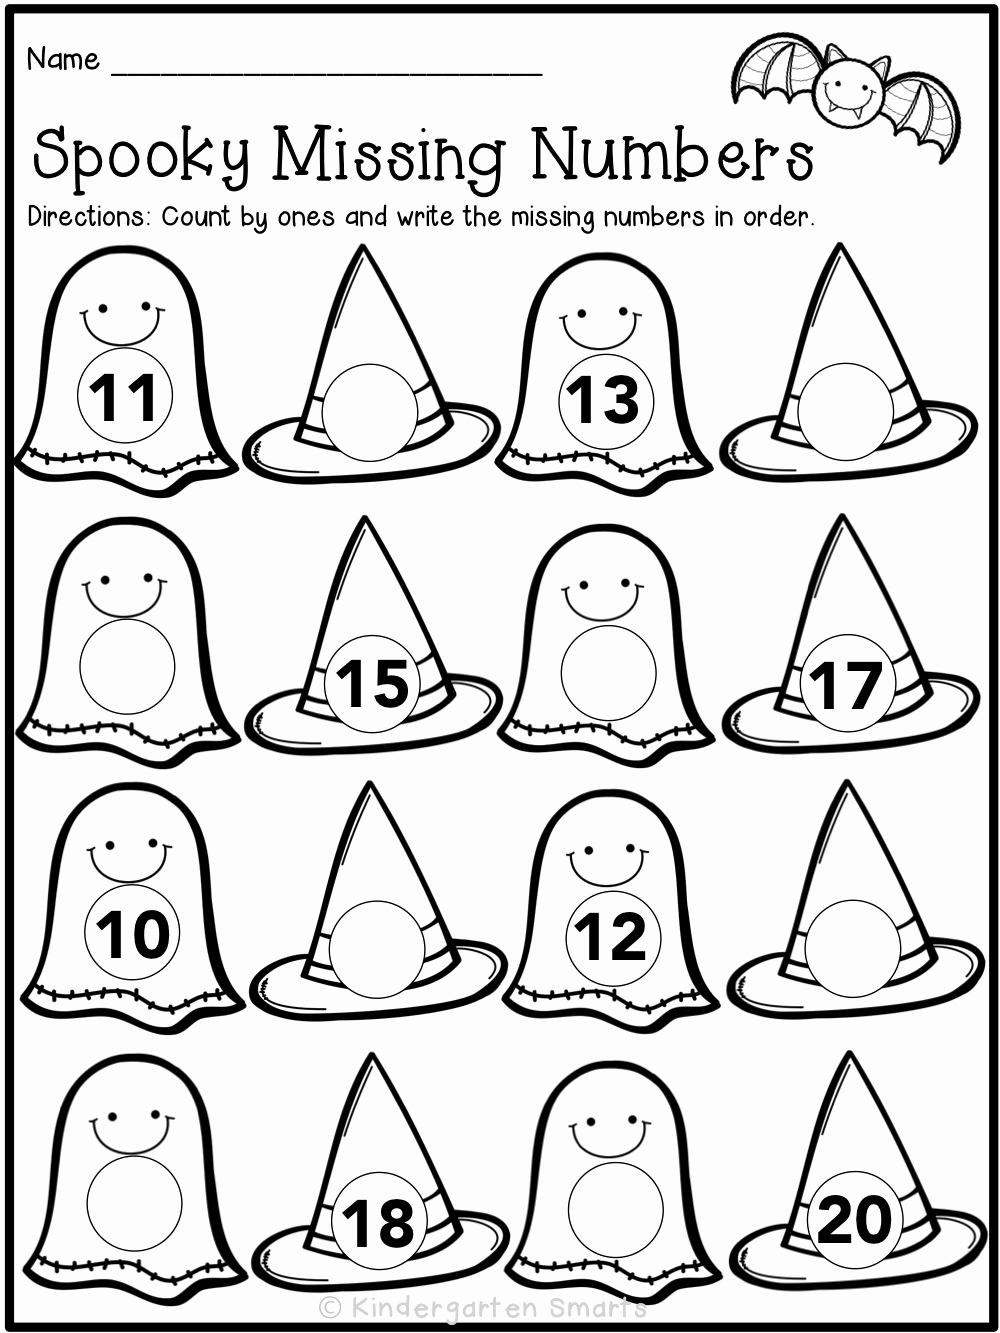 Preschool Halloween Worksheets Free Awesome 15 Halloween Activities Worksheets and Printables for